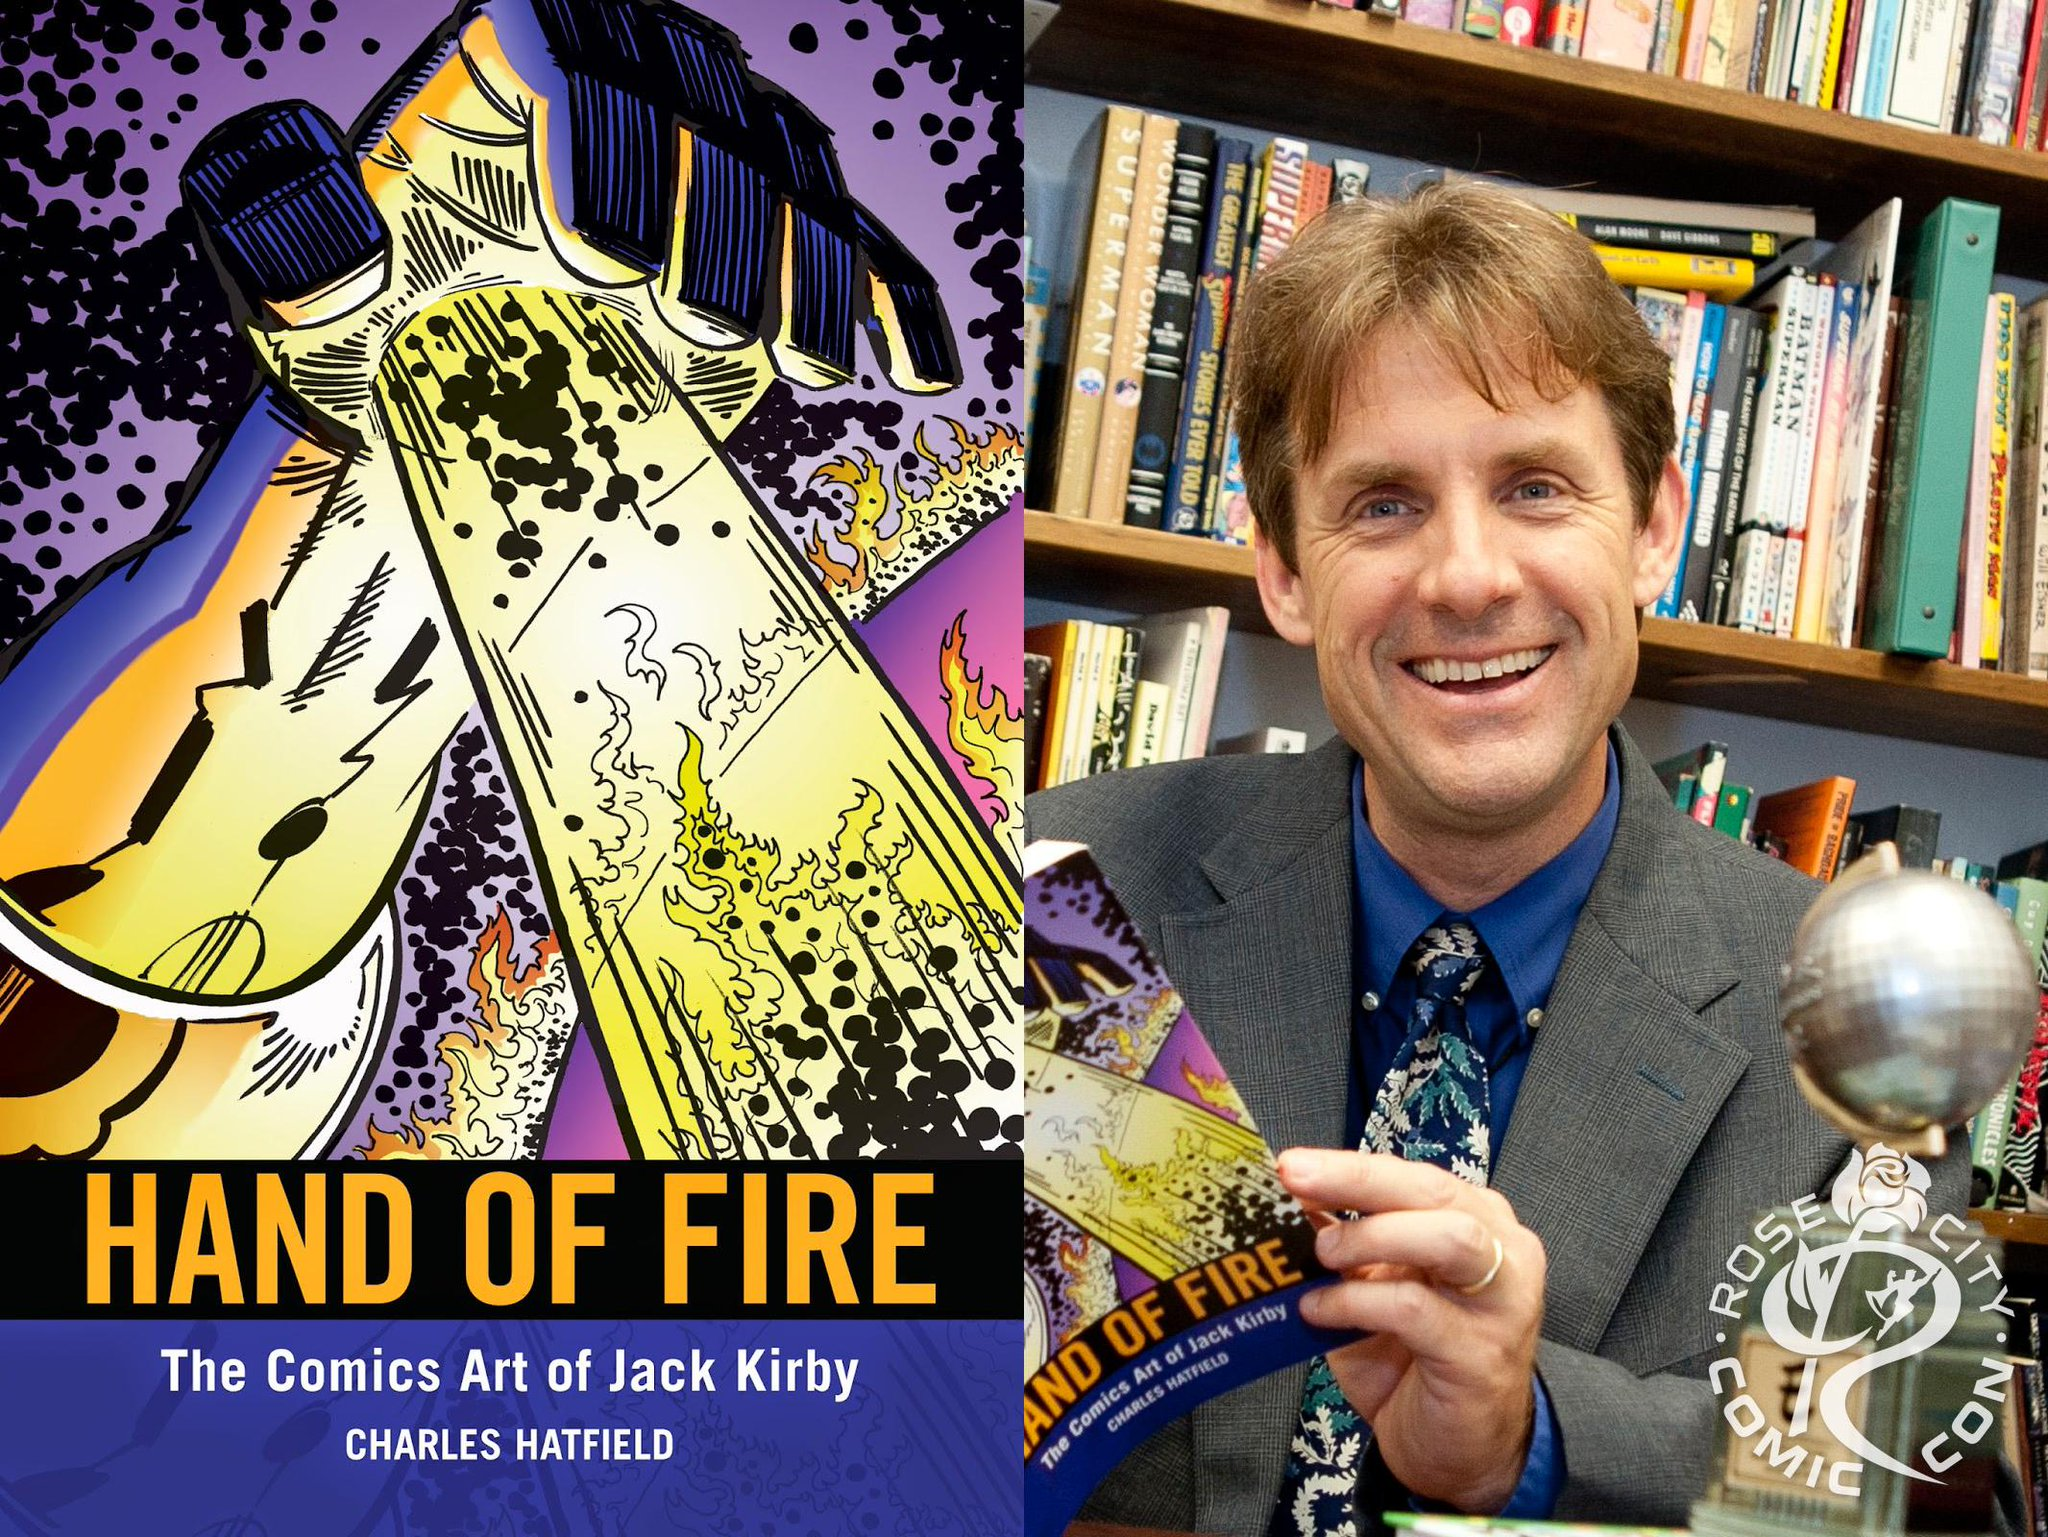 As we continue announcing #RCCC guests, please welcome @csunorthridge professor @charleshatfield! http://t.co/PuLIVZDGHi